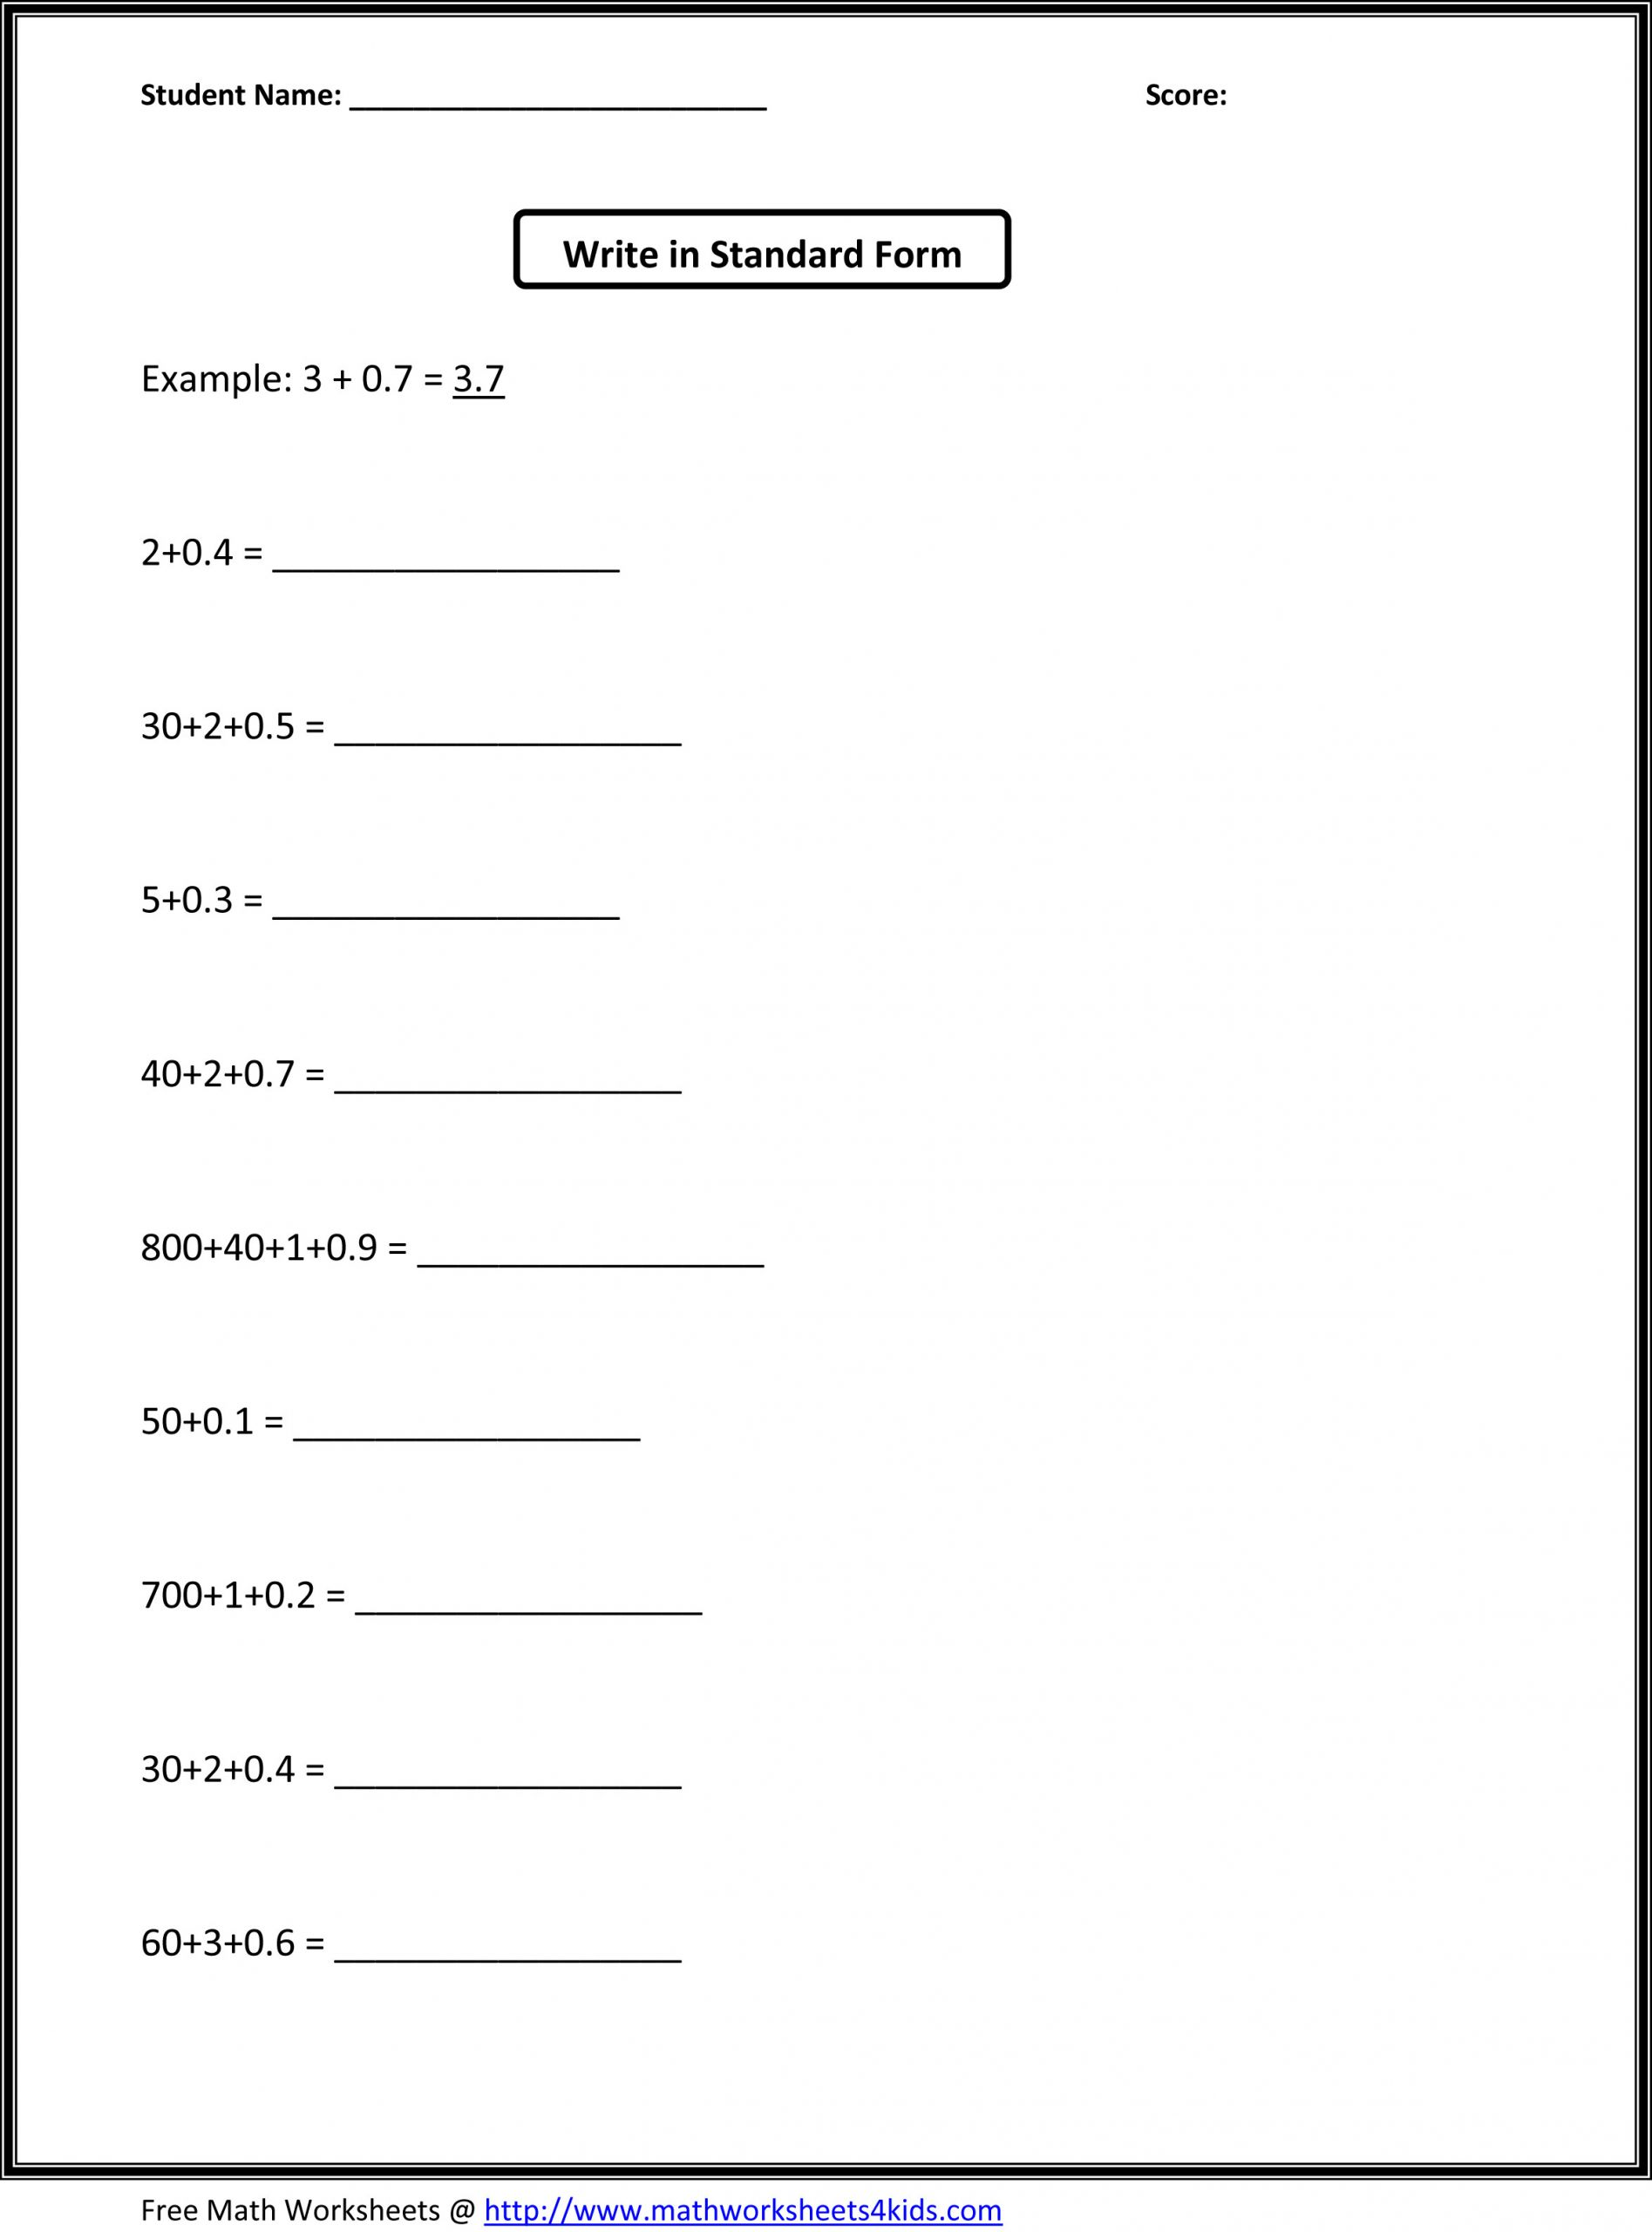 5 Free Math Worksheets Third Grade 3 Fractions And